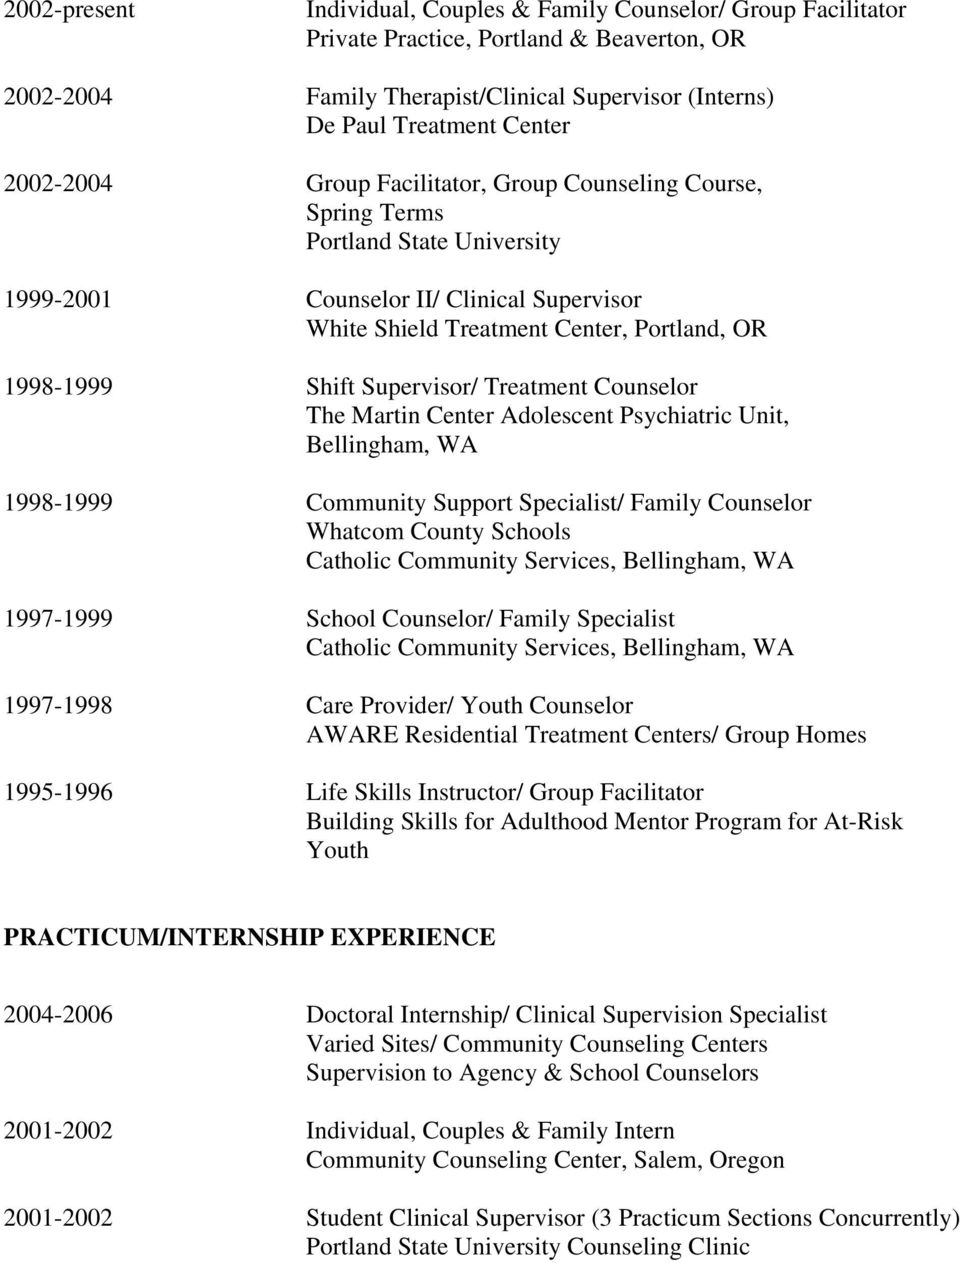 Counselor The Martin Center Adolescent Psychiatric Unit, Bellingham, WA 1998-1999 Community Support Specialist/ Family Counselor Whatcom County Schools Catholic Community Services, Bellingham, WA